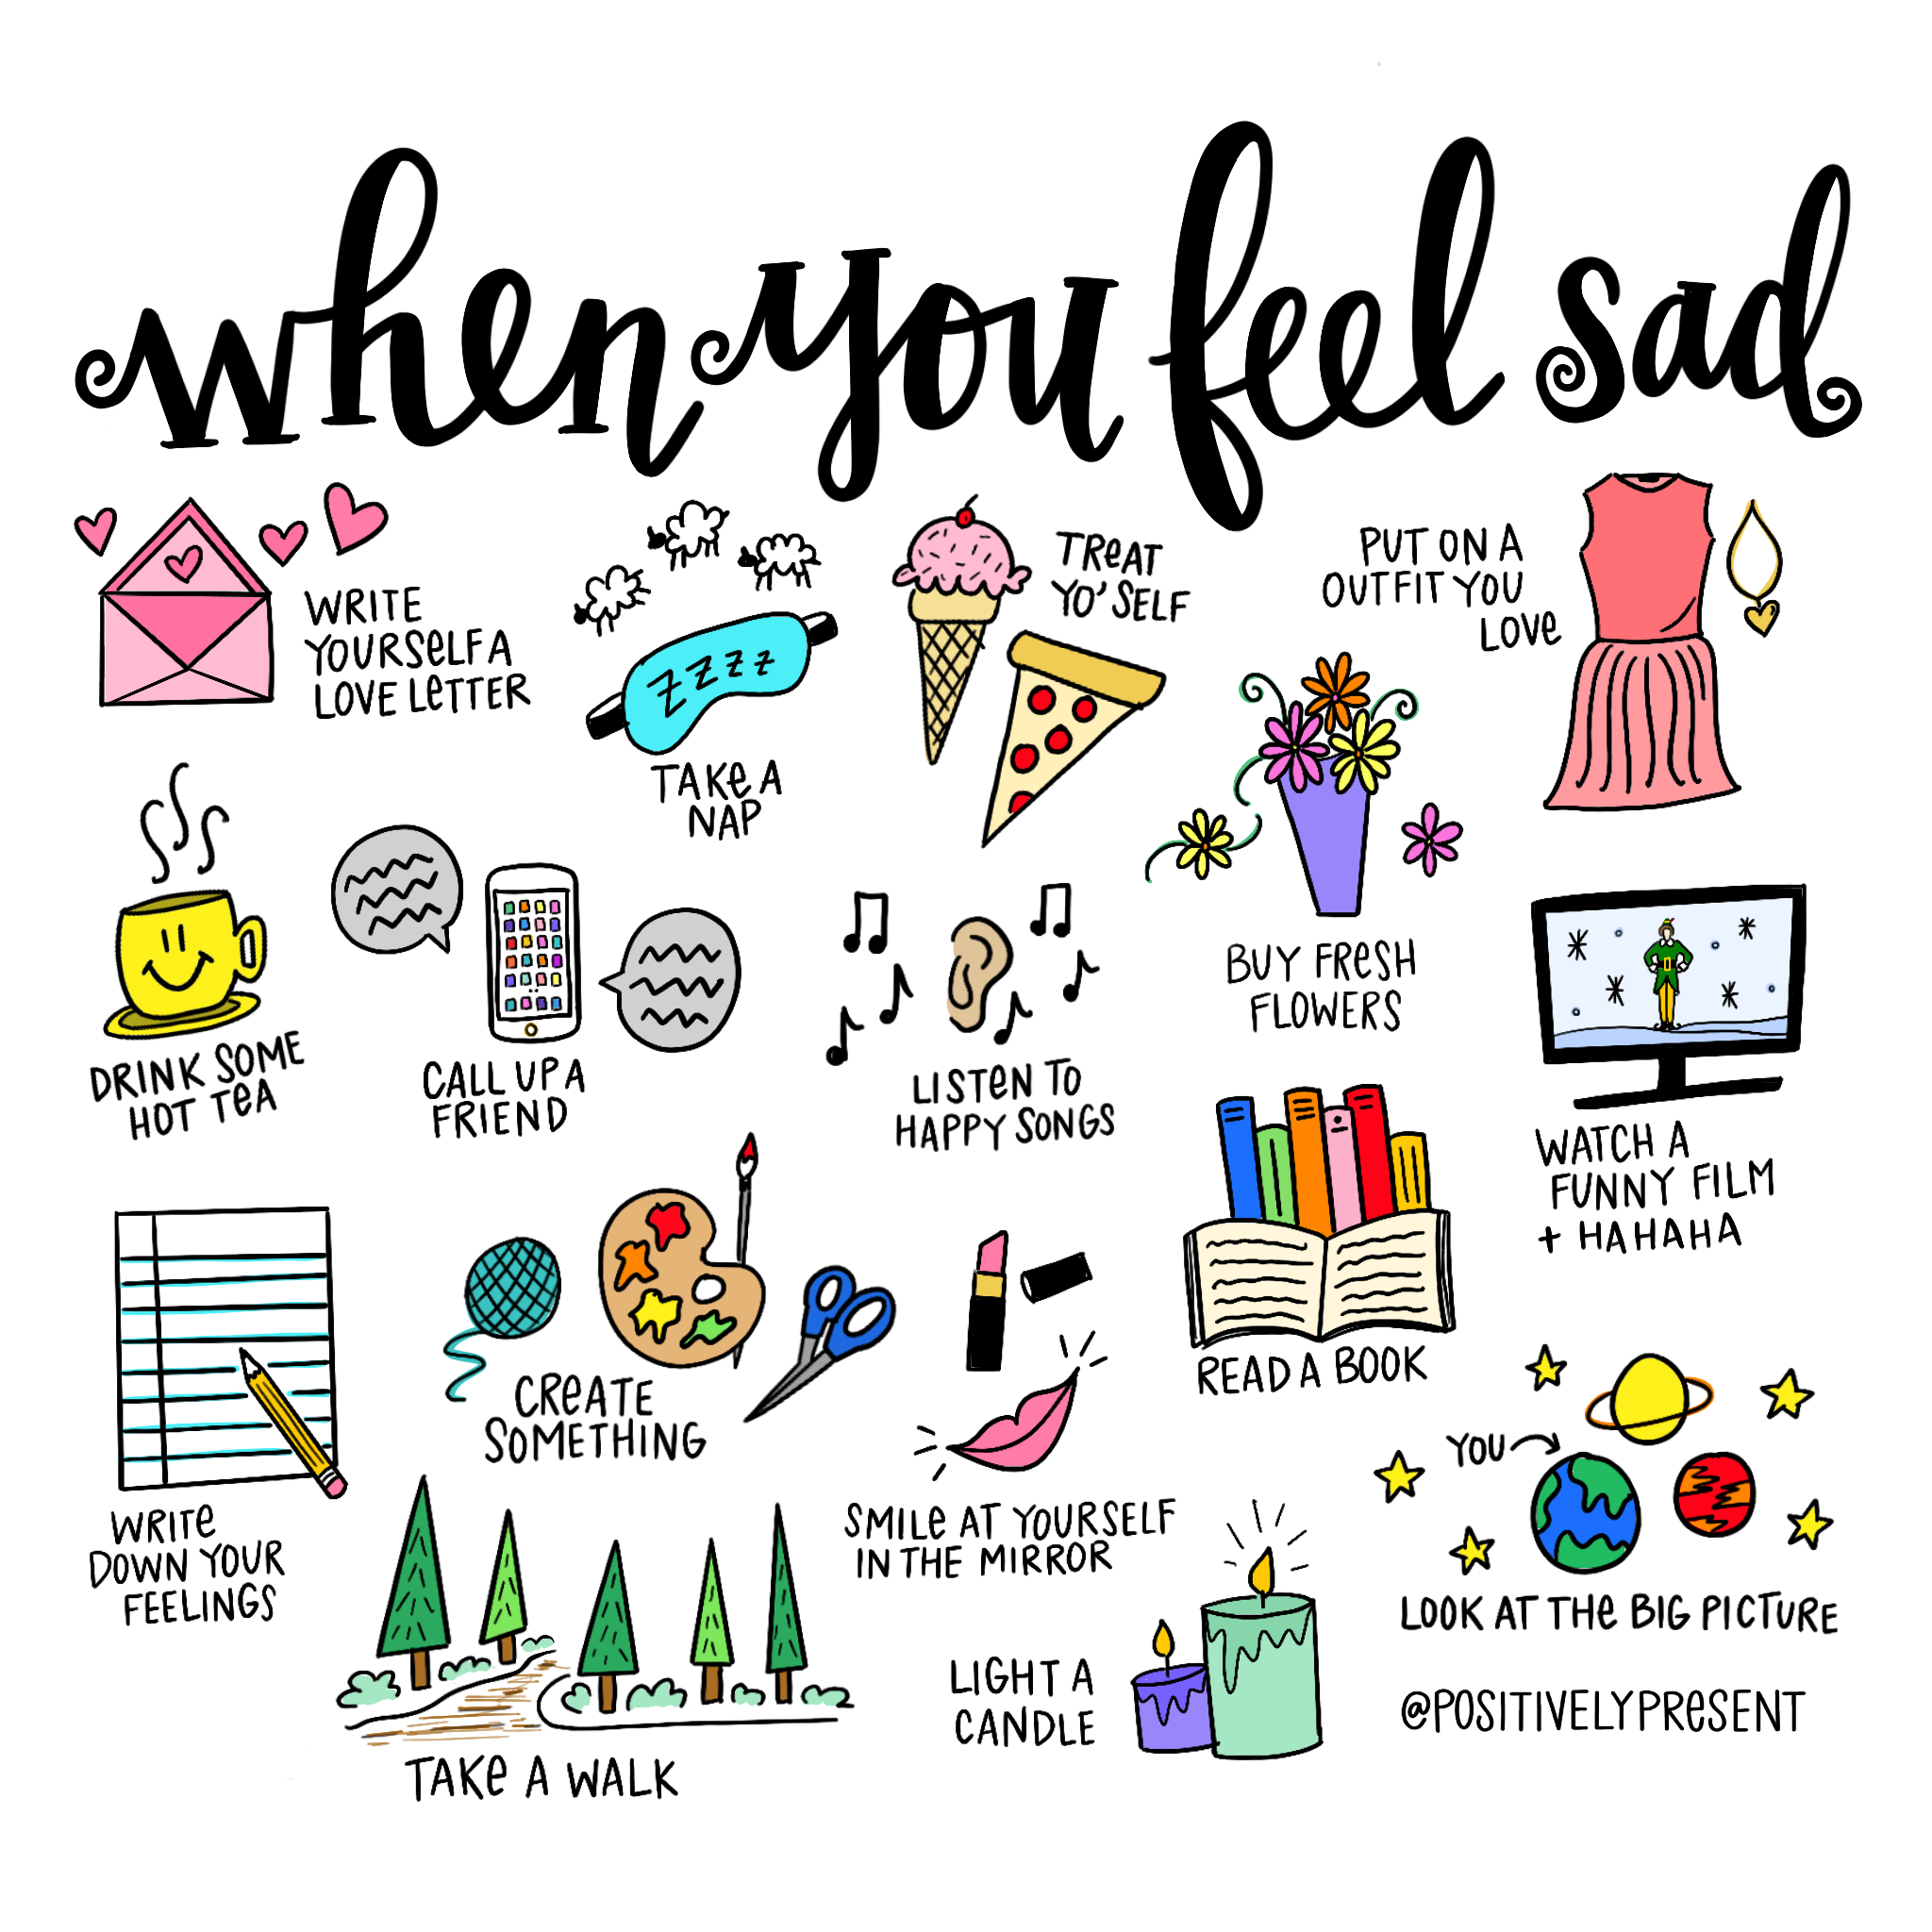 when you feel sad